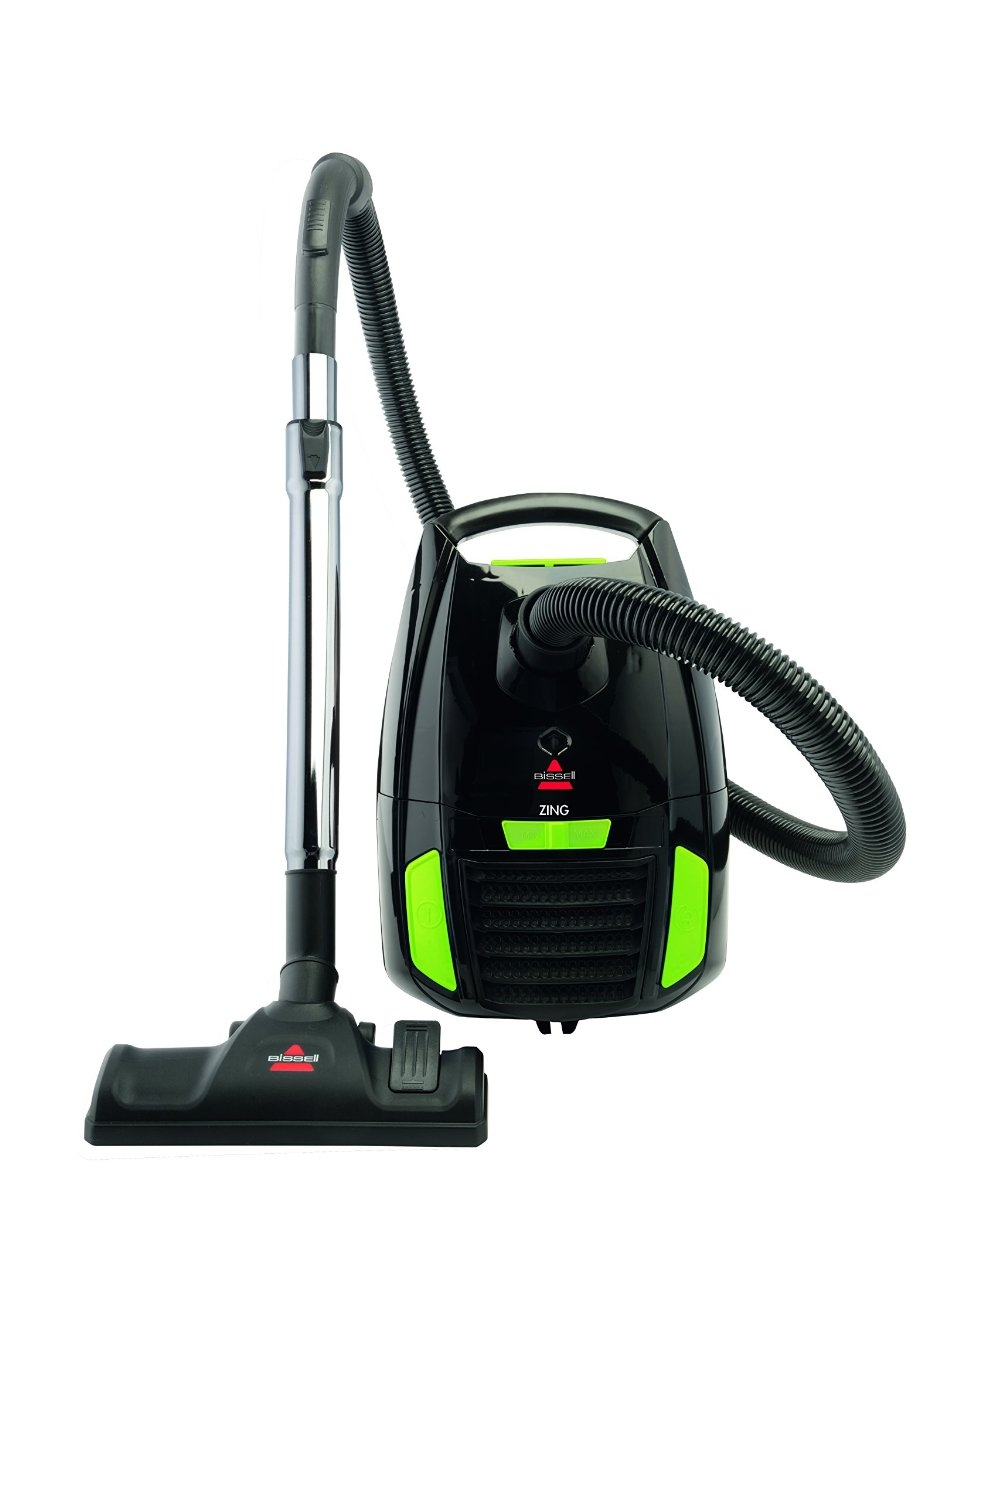 Best Canister Vacuum For Wood Floors And Carpetbest canister vacuum for hardwood floors